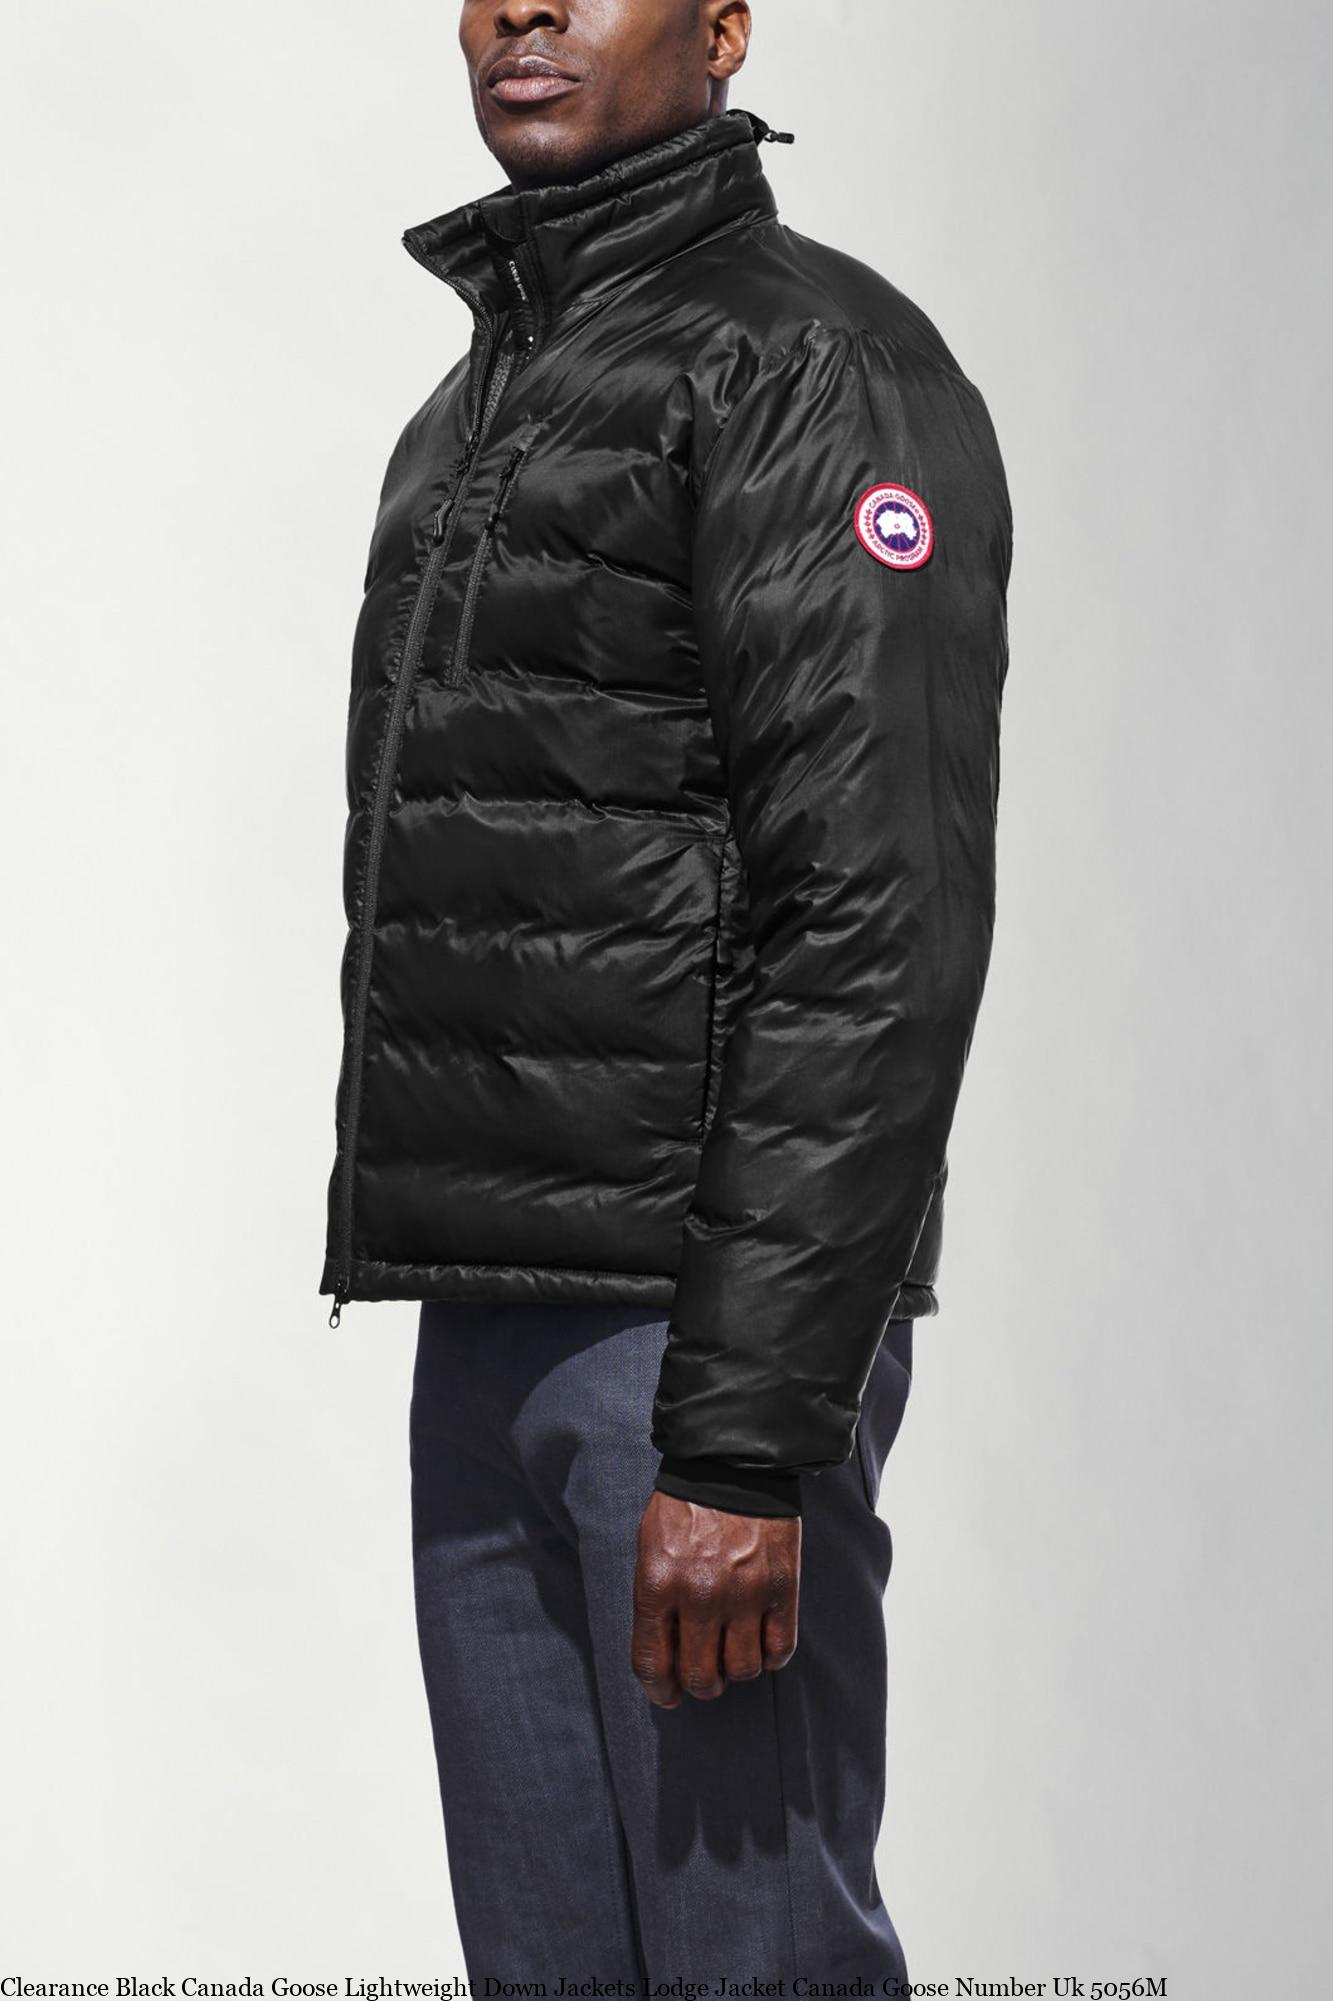 Clearance Black Canada Goose Lightweight Down Jackets